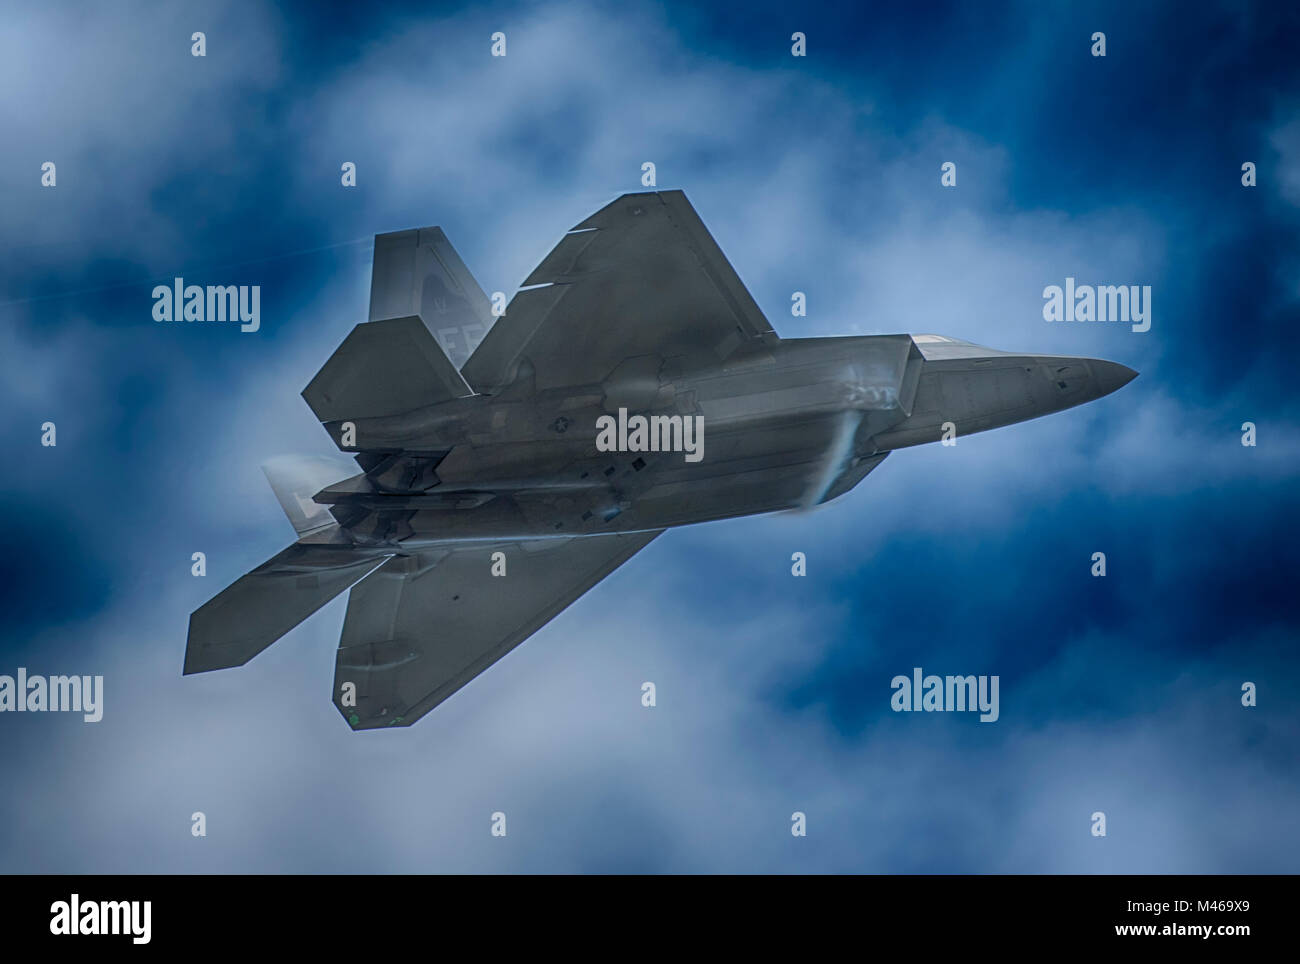 Lockheed Martin F22 Raptor flying display at RIAT, RAF Fairford, UK. Credit: Malcolm Park/Alamy - Stock Image